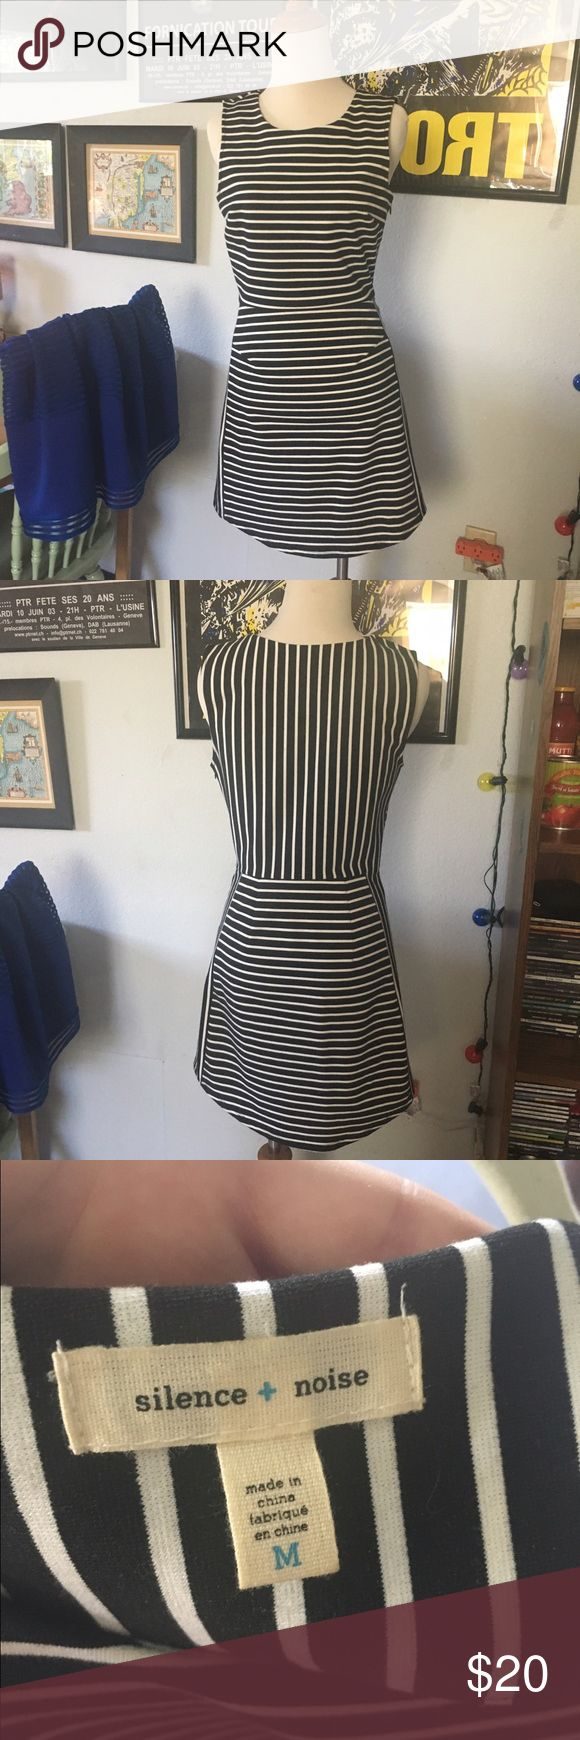 Striped bodycon dress Urban Outfitters striped body con dress size Medium. Please let me know if you have any questions. Thanks! silence + noise Dresses Midi